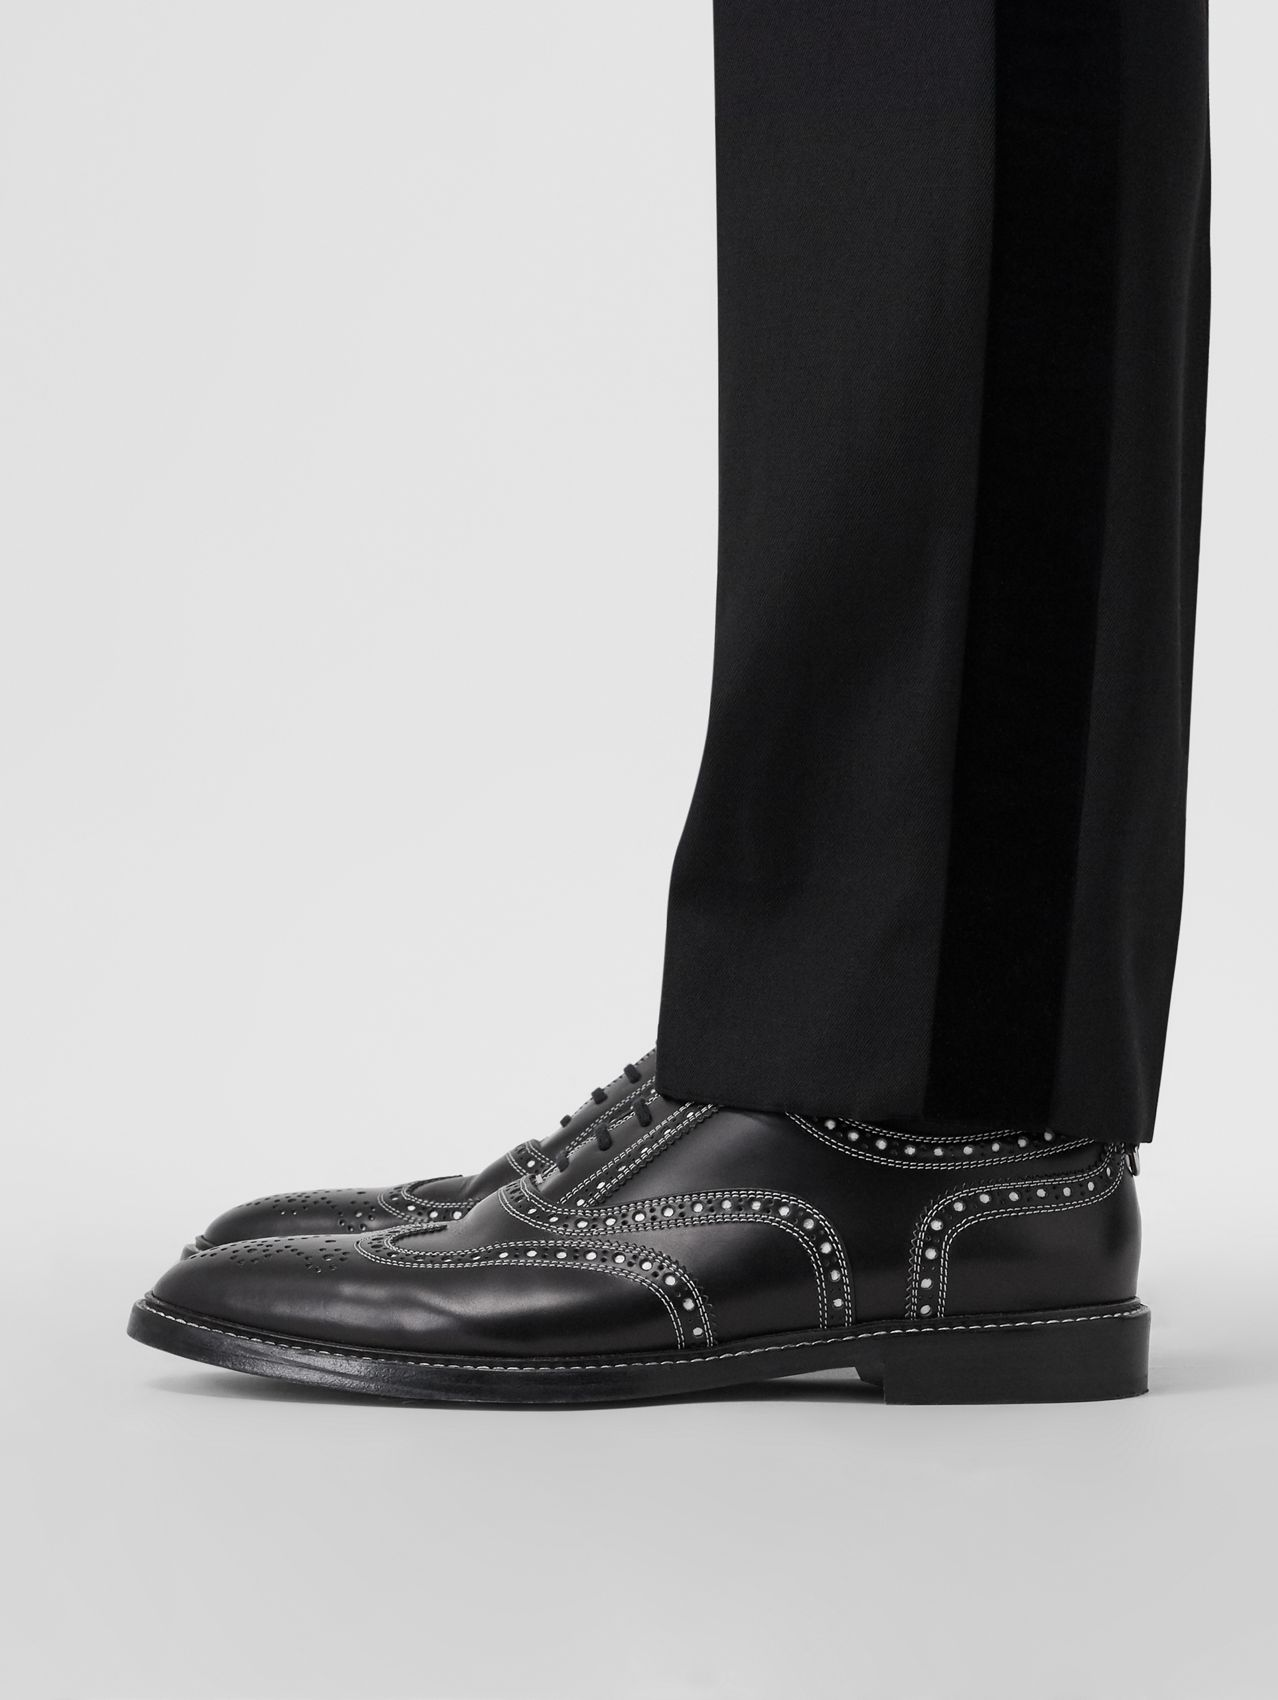 D-ring Detail Two-tone Leather Oxford Brogues in Black/white